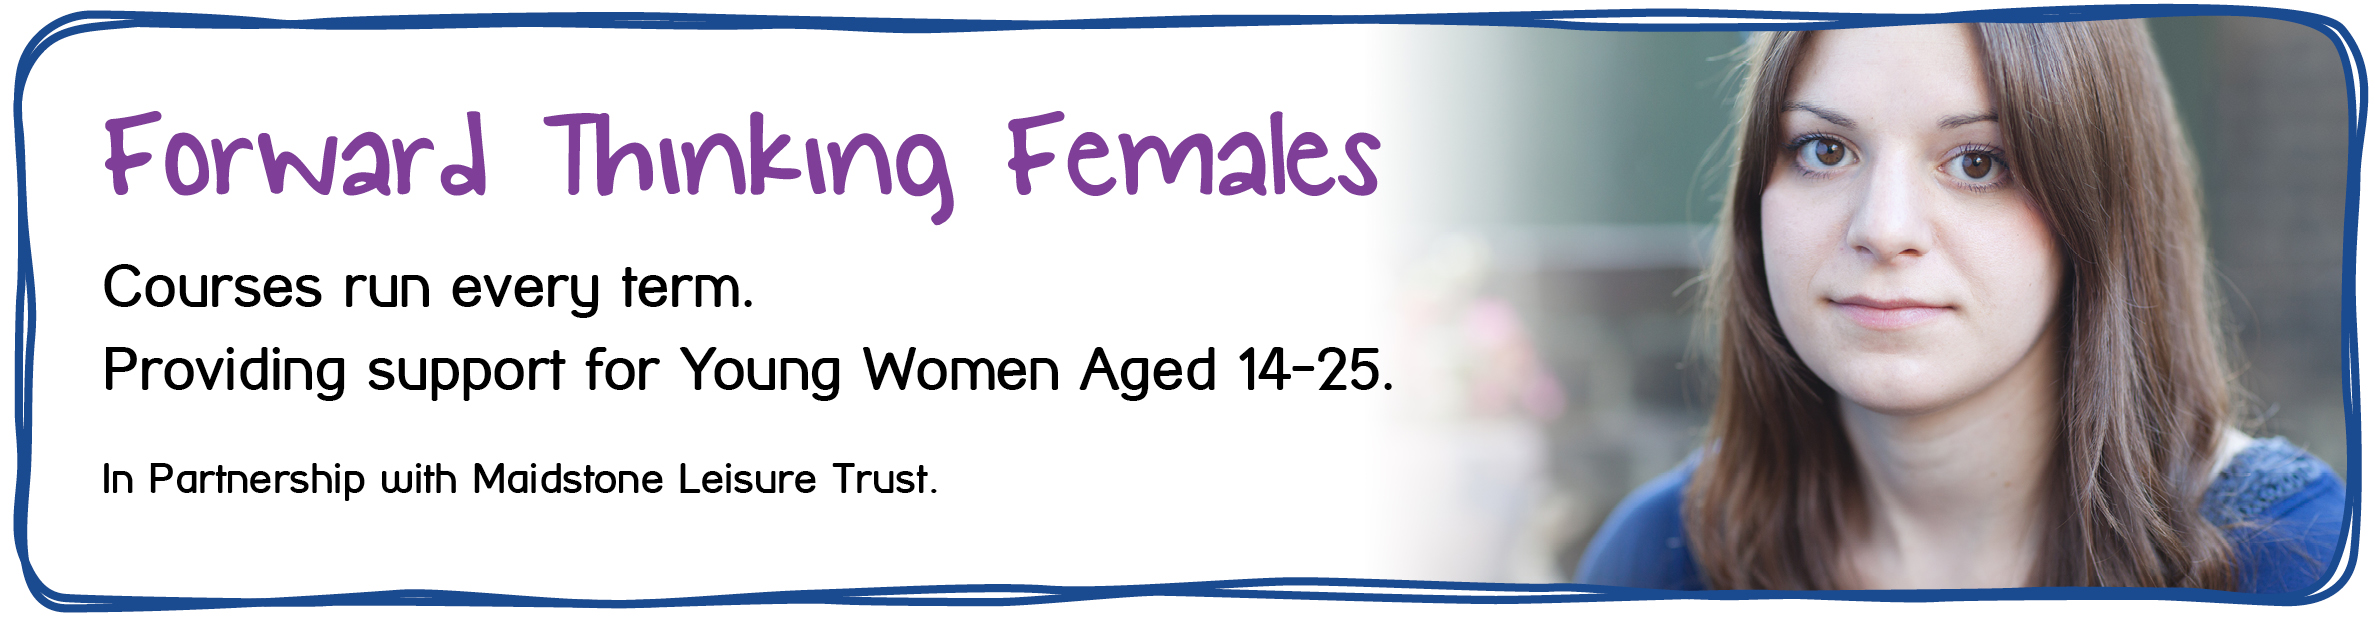 Maidstone and Mid-Kent Mind Youth Services - Forward Thinking Females - A course in partnership with Maidstone Leisure Trust supporting Young Women Aged 14-25.